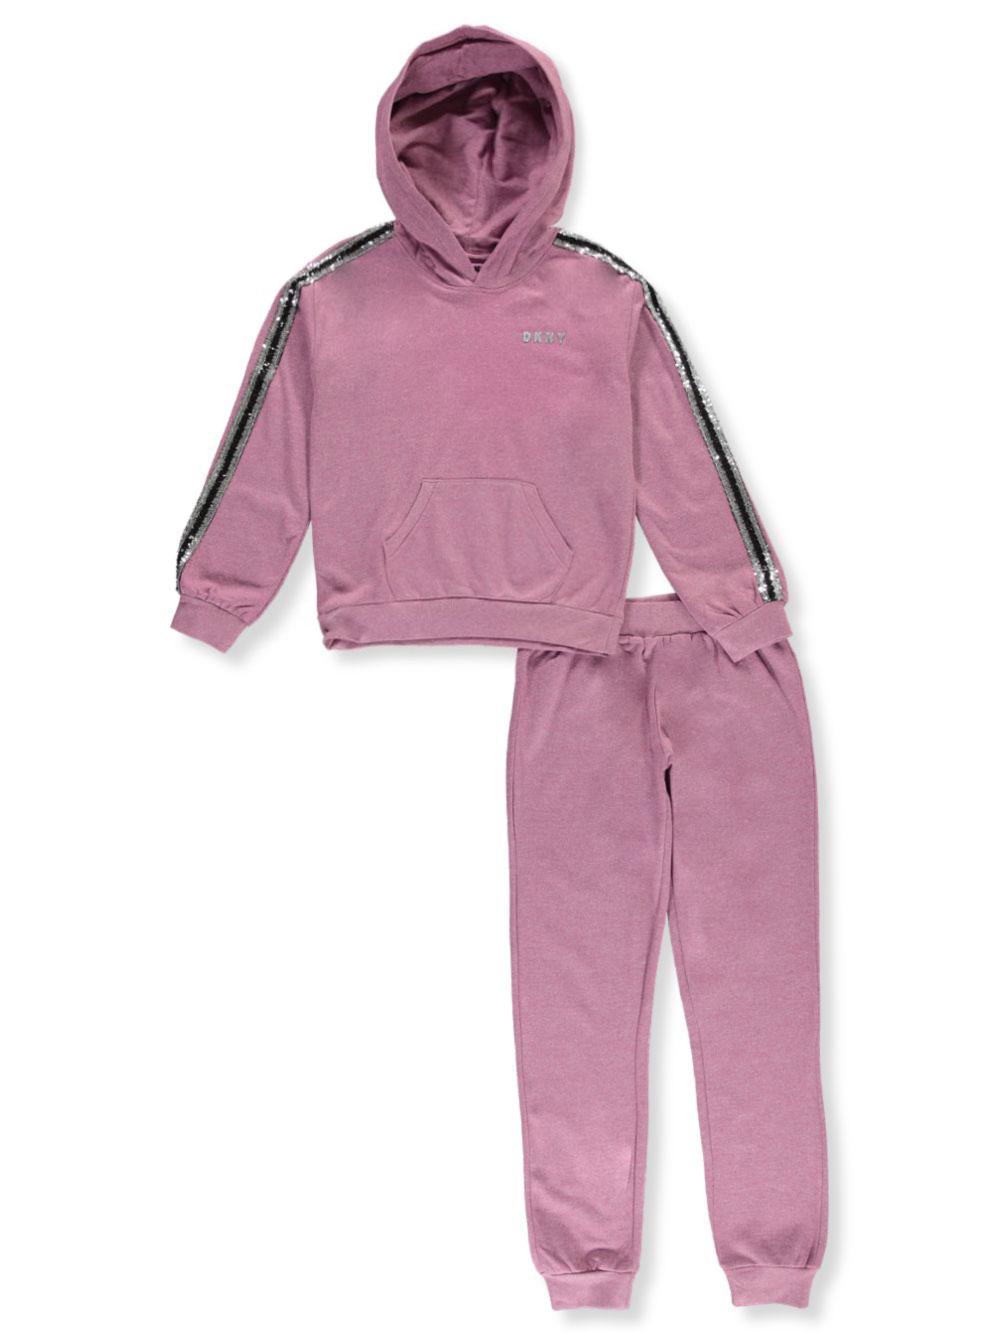 largest selection of fashion styles elegant appearance Sequin Stripe 2-Piece Sweatsuit Pants Set by DKNY in Mauve